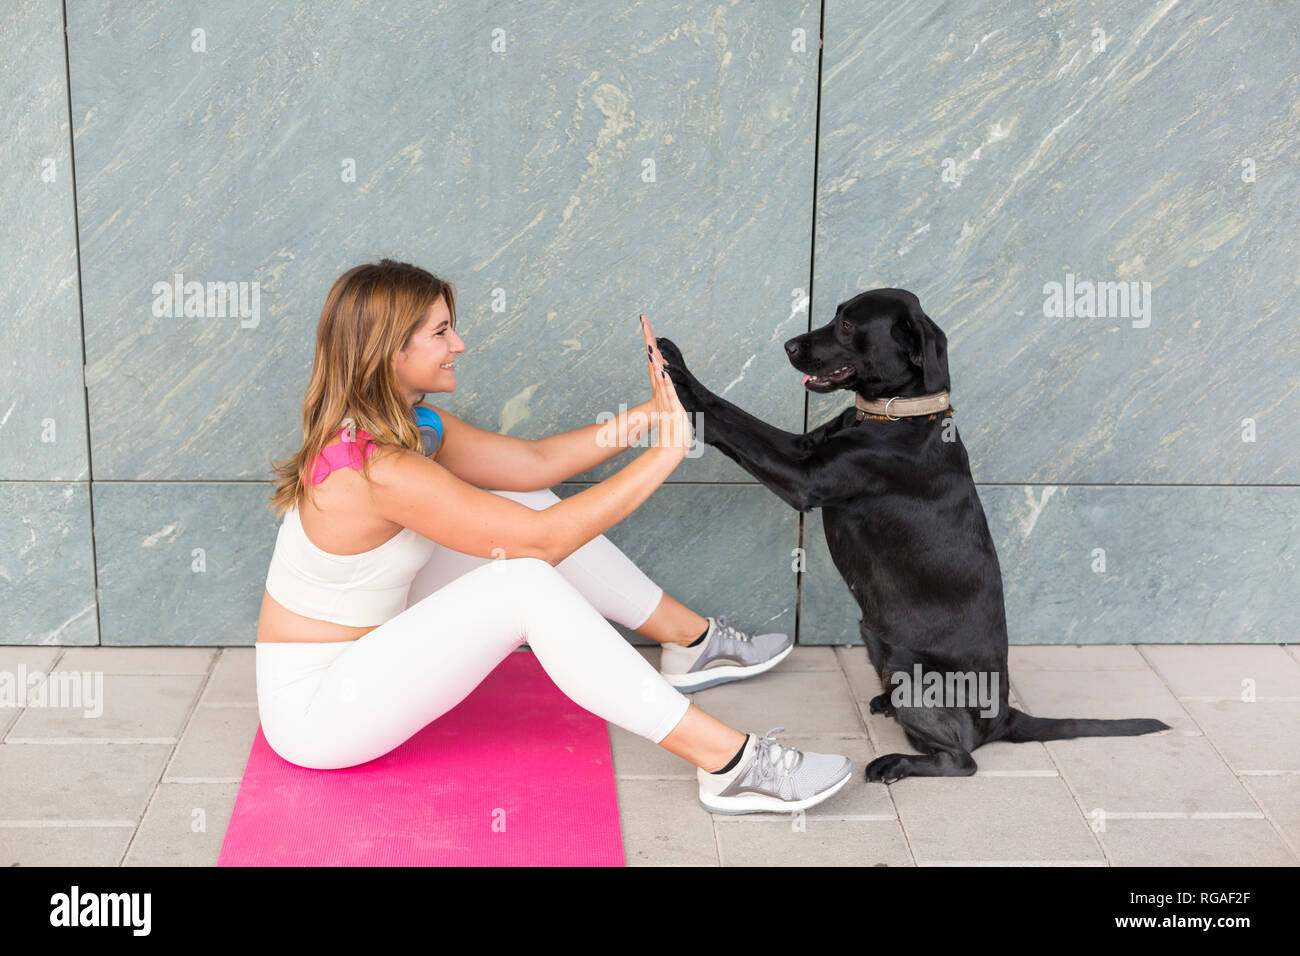 Young woman sitting on Yoga mat doing relaxation exercise with her black dog - Stock Image